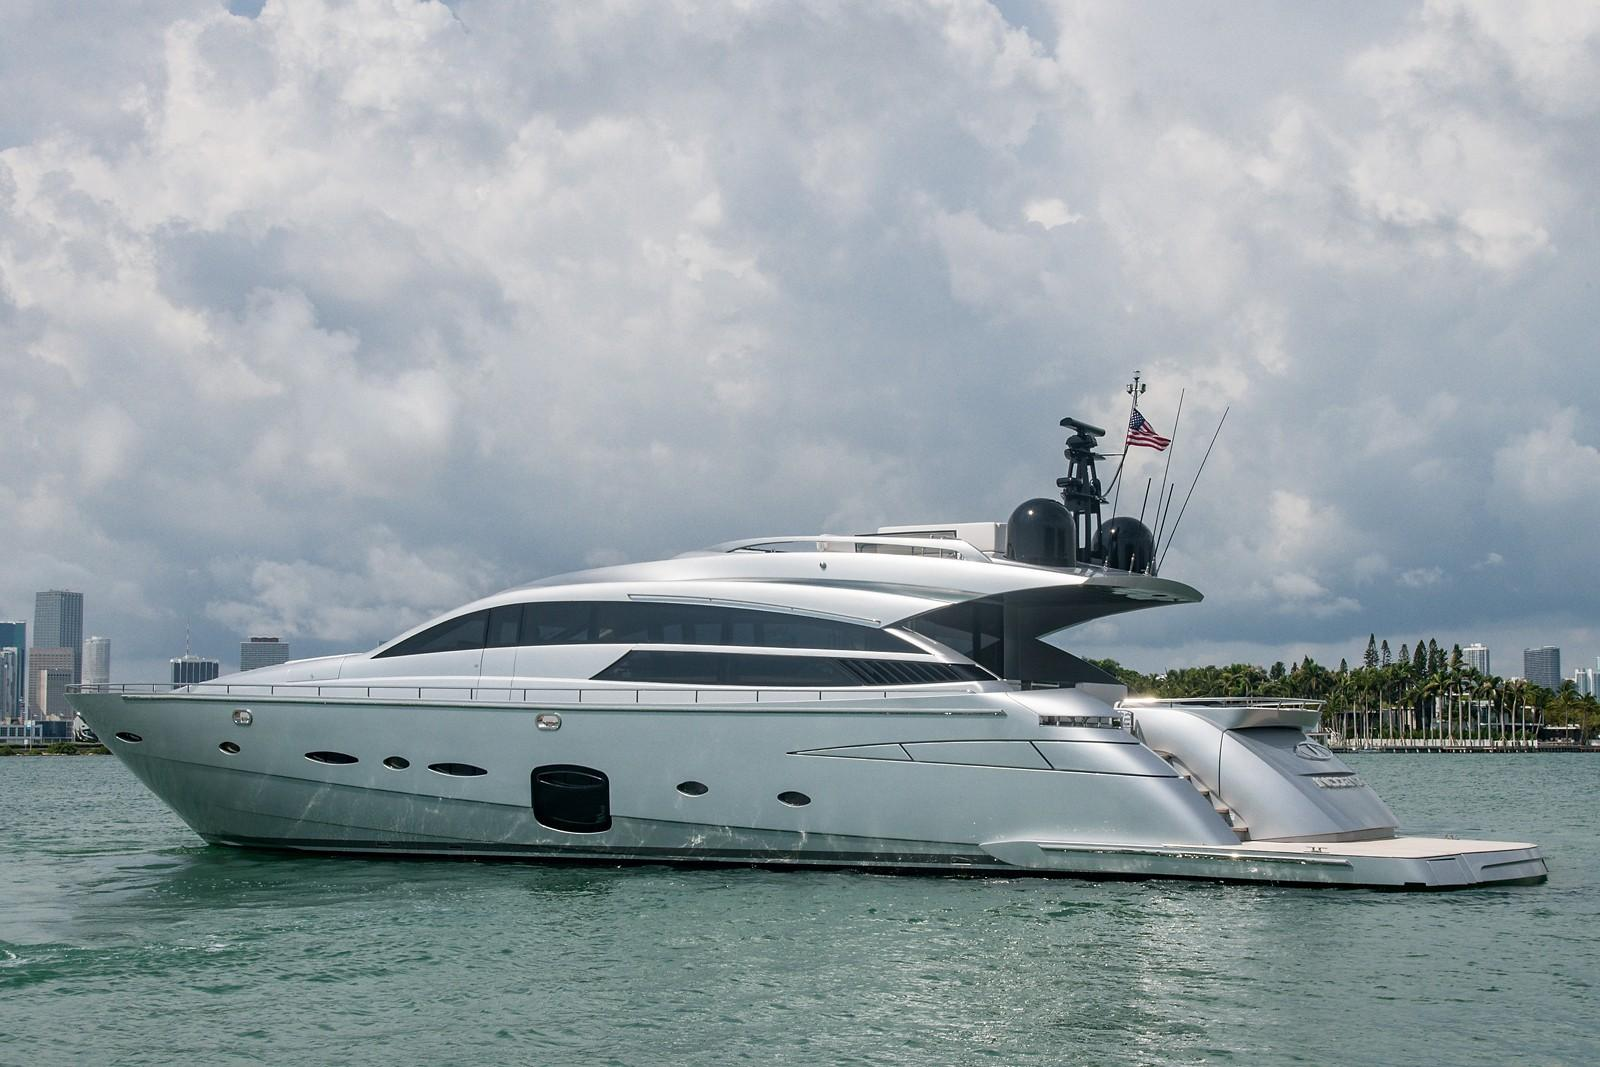 92 Pershing Incognito 2012 Miami | Denison Yacht Sales